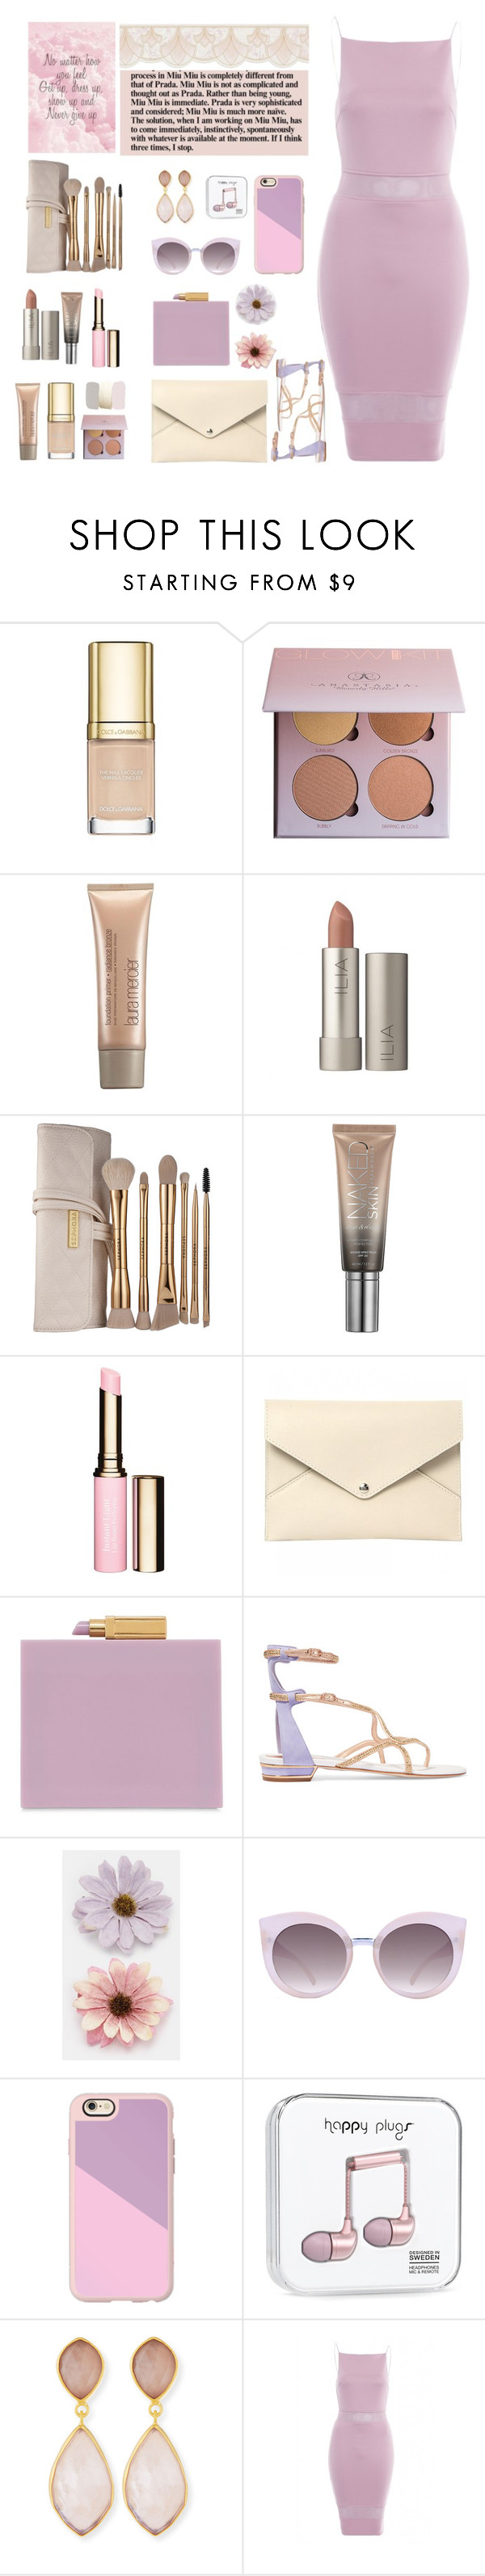 """Forever always Dress cute color"" by licethfashion ❤ liked on Polyvore featuring Dolce&Gabbana, Laura Mercier, Sephora Collection, Urban Decay, Clarins, Louis Vuitton, Lulu Guinness, René Caovilla, ASOS and Quay"